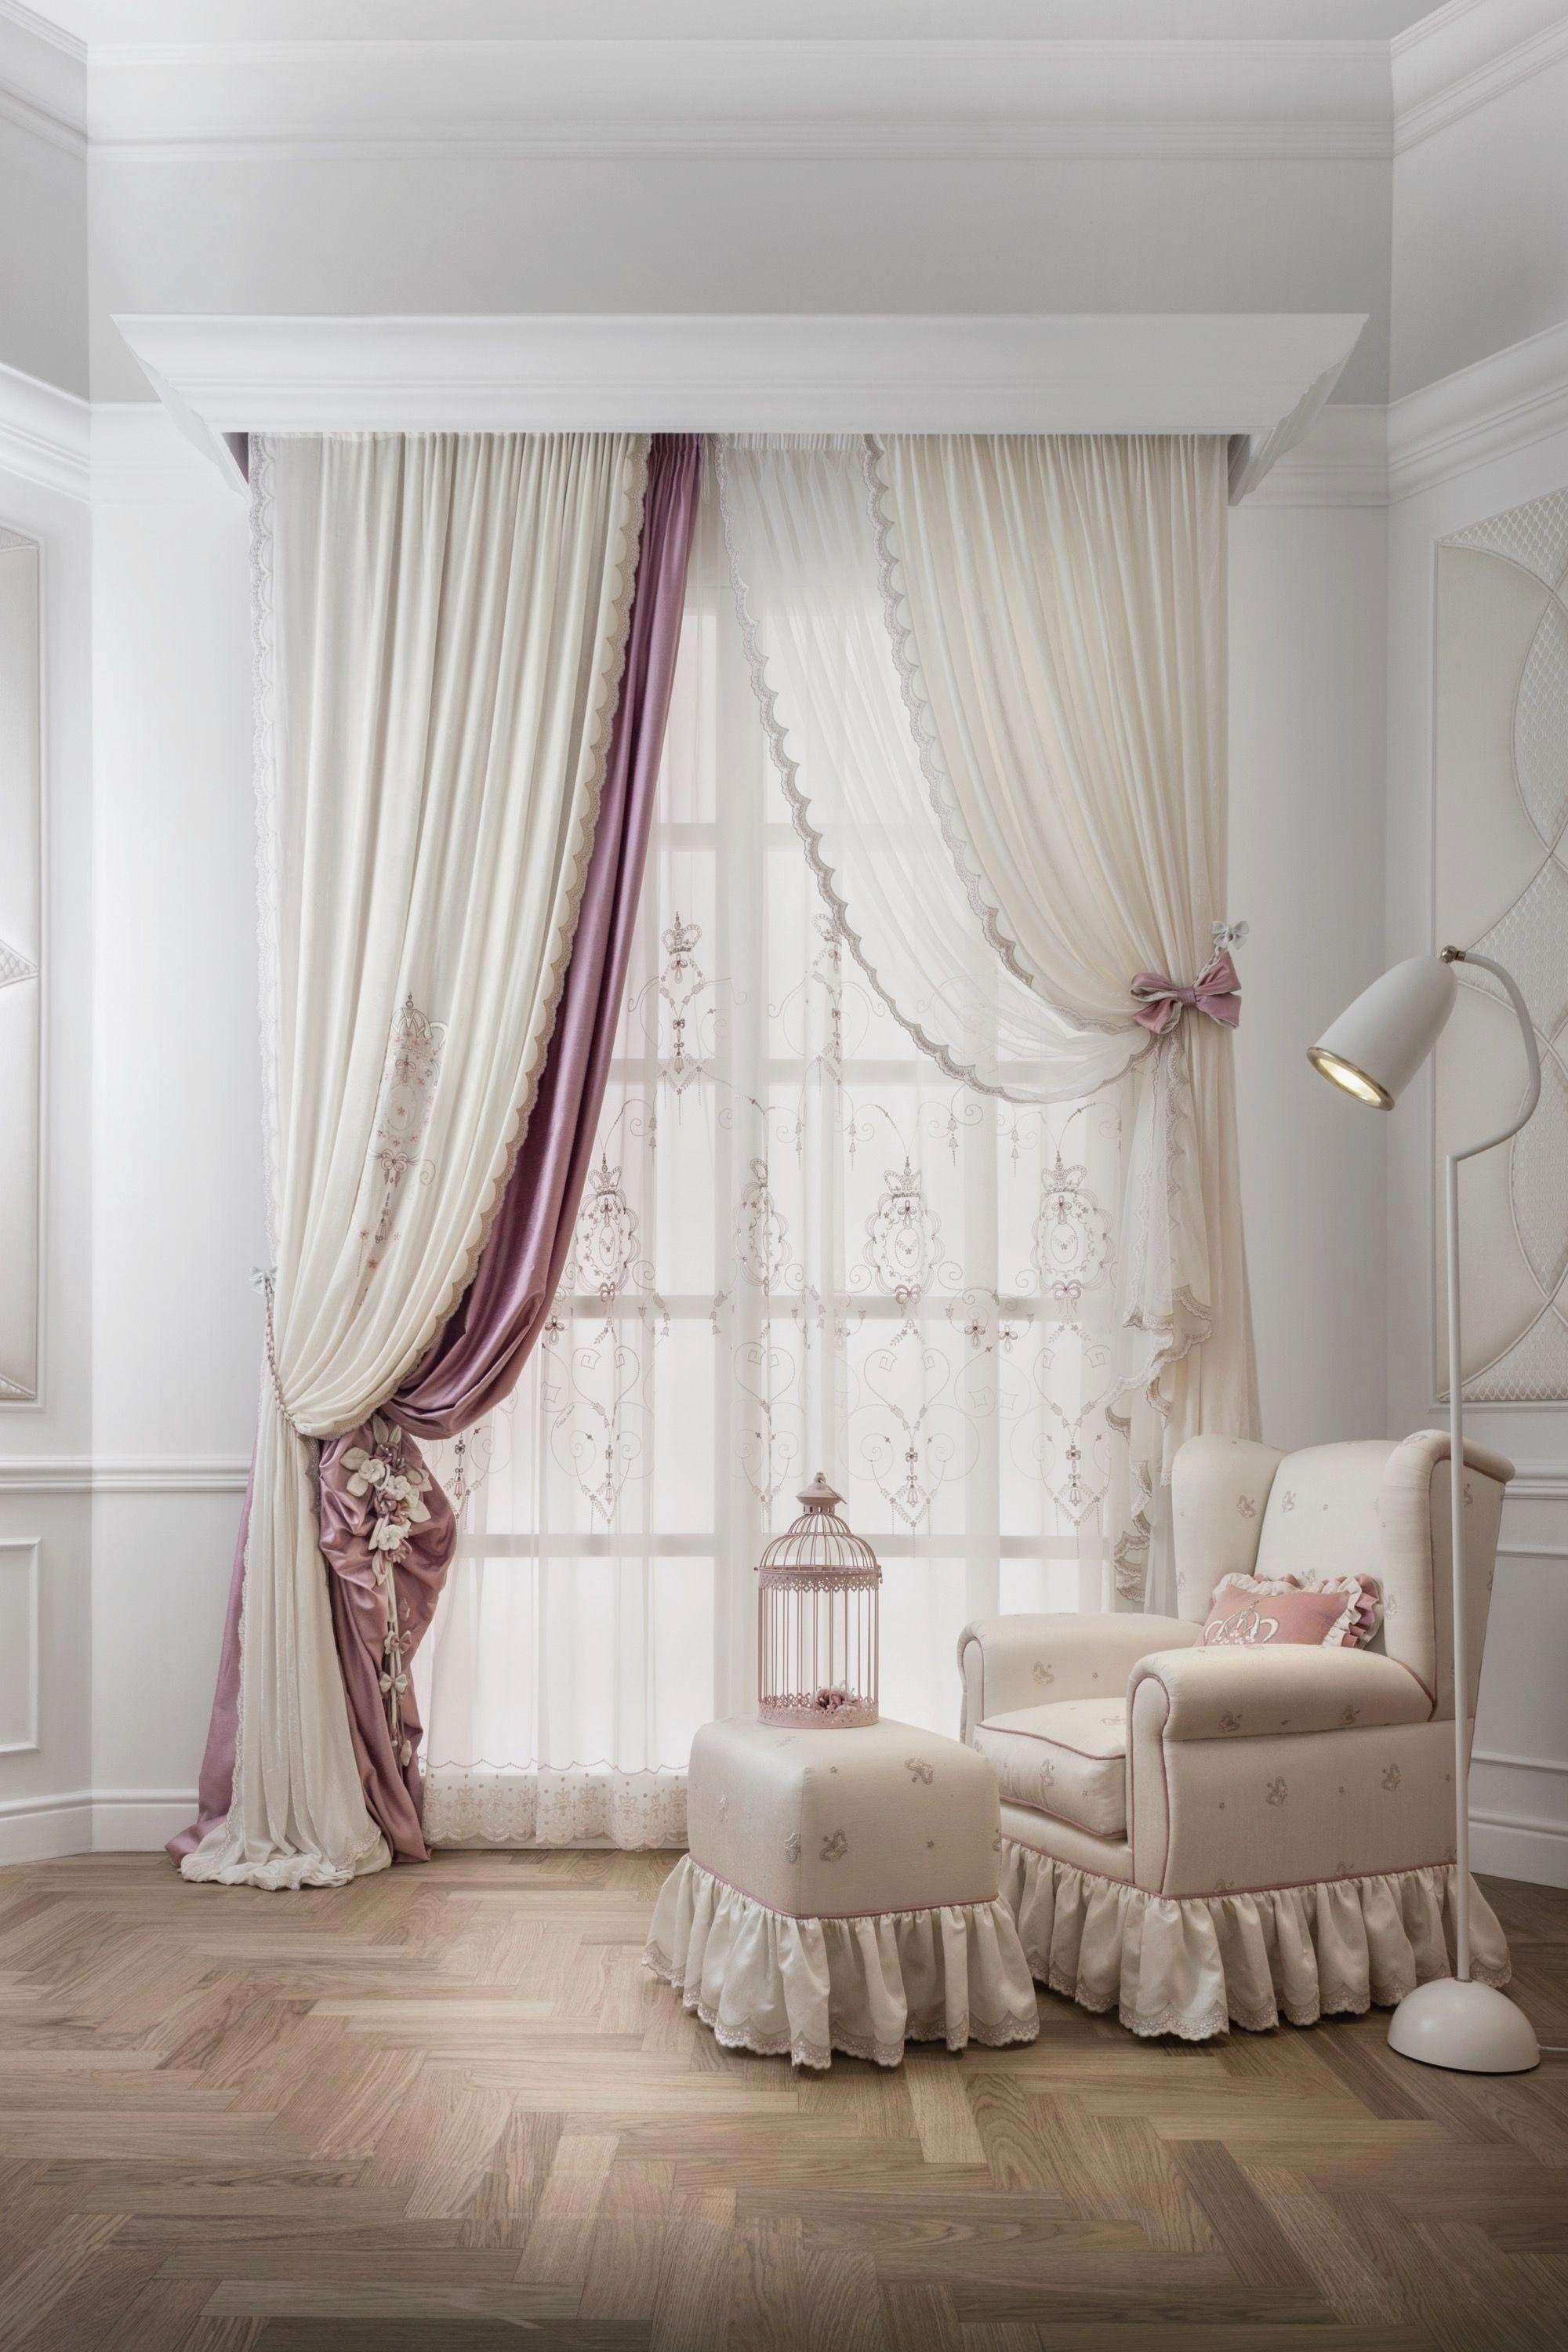 Pink Bedroom Decor Awesome Home Decor atlanta Lovely Bedroom Bedroom